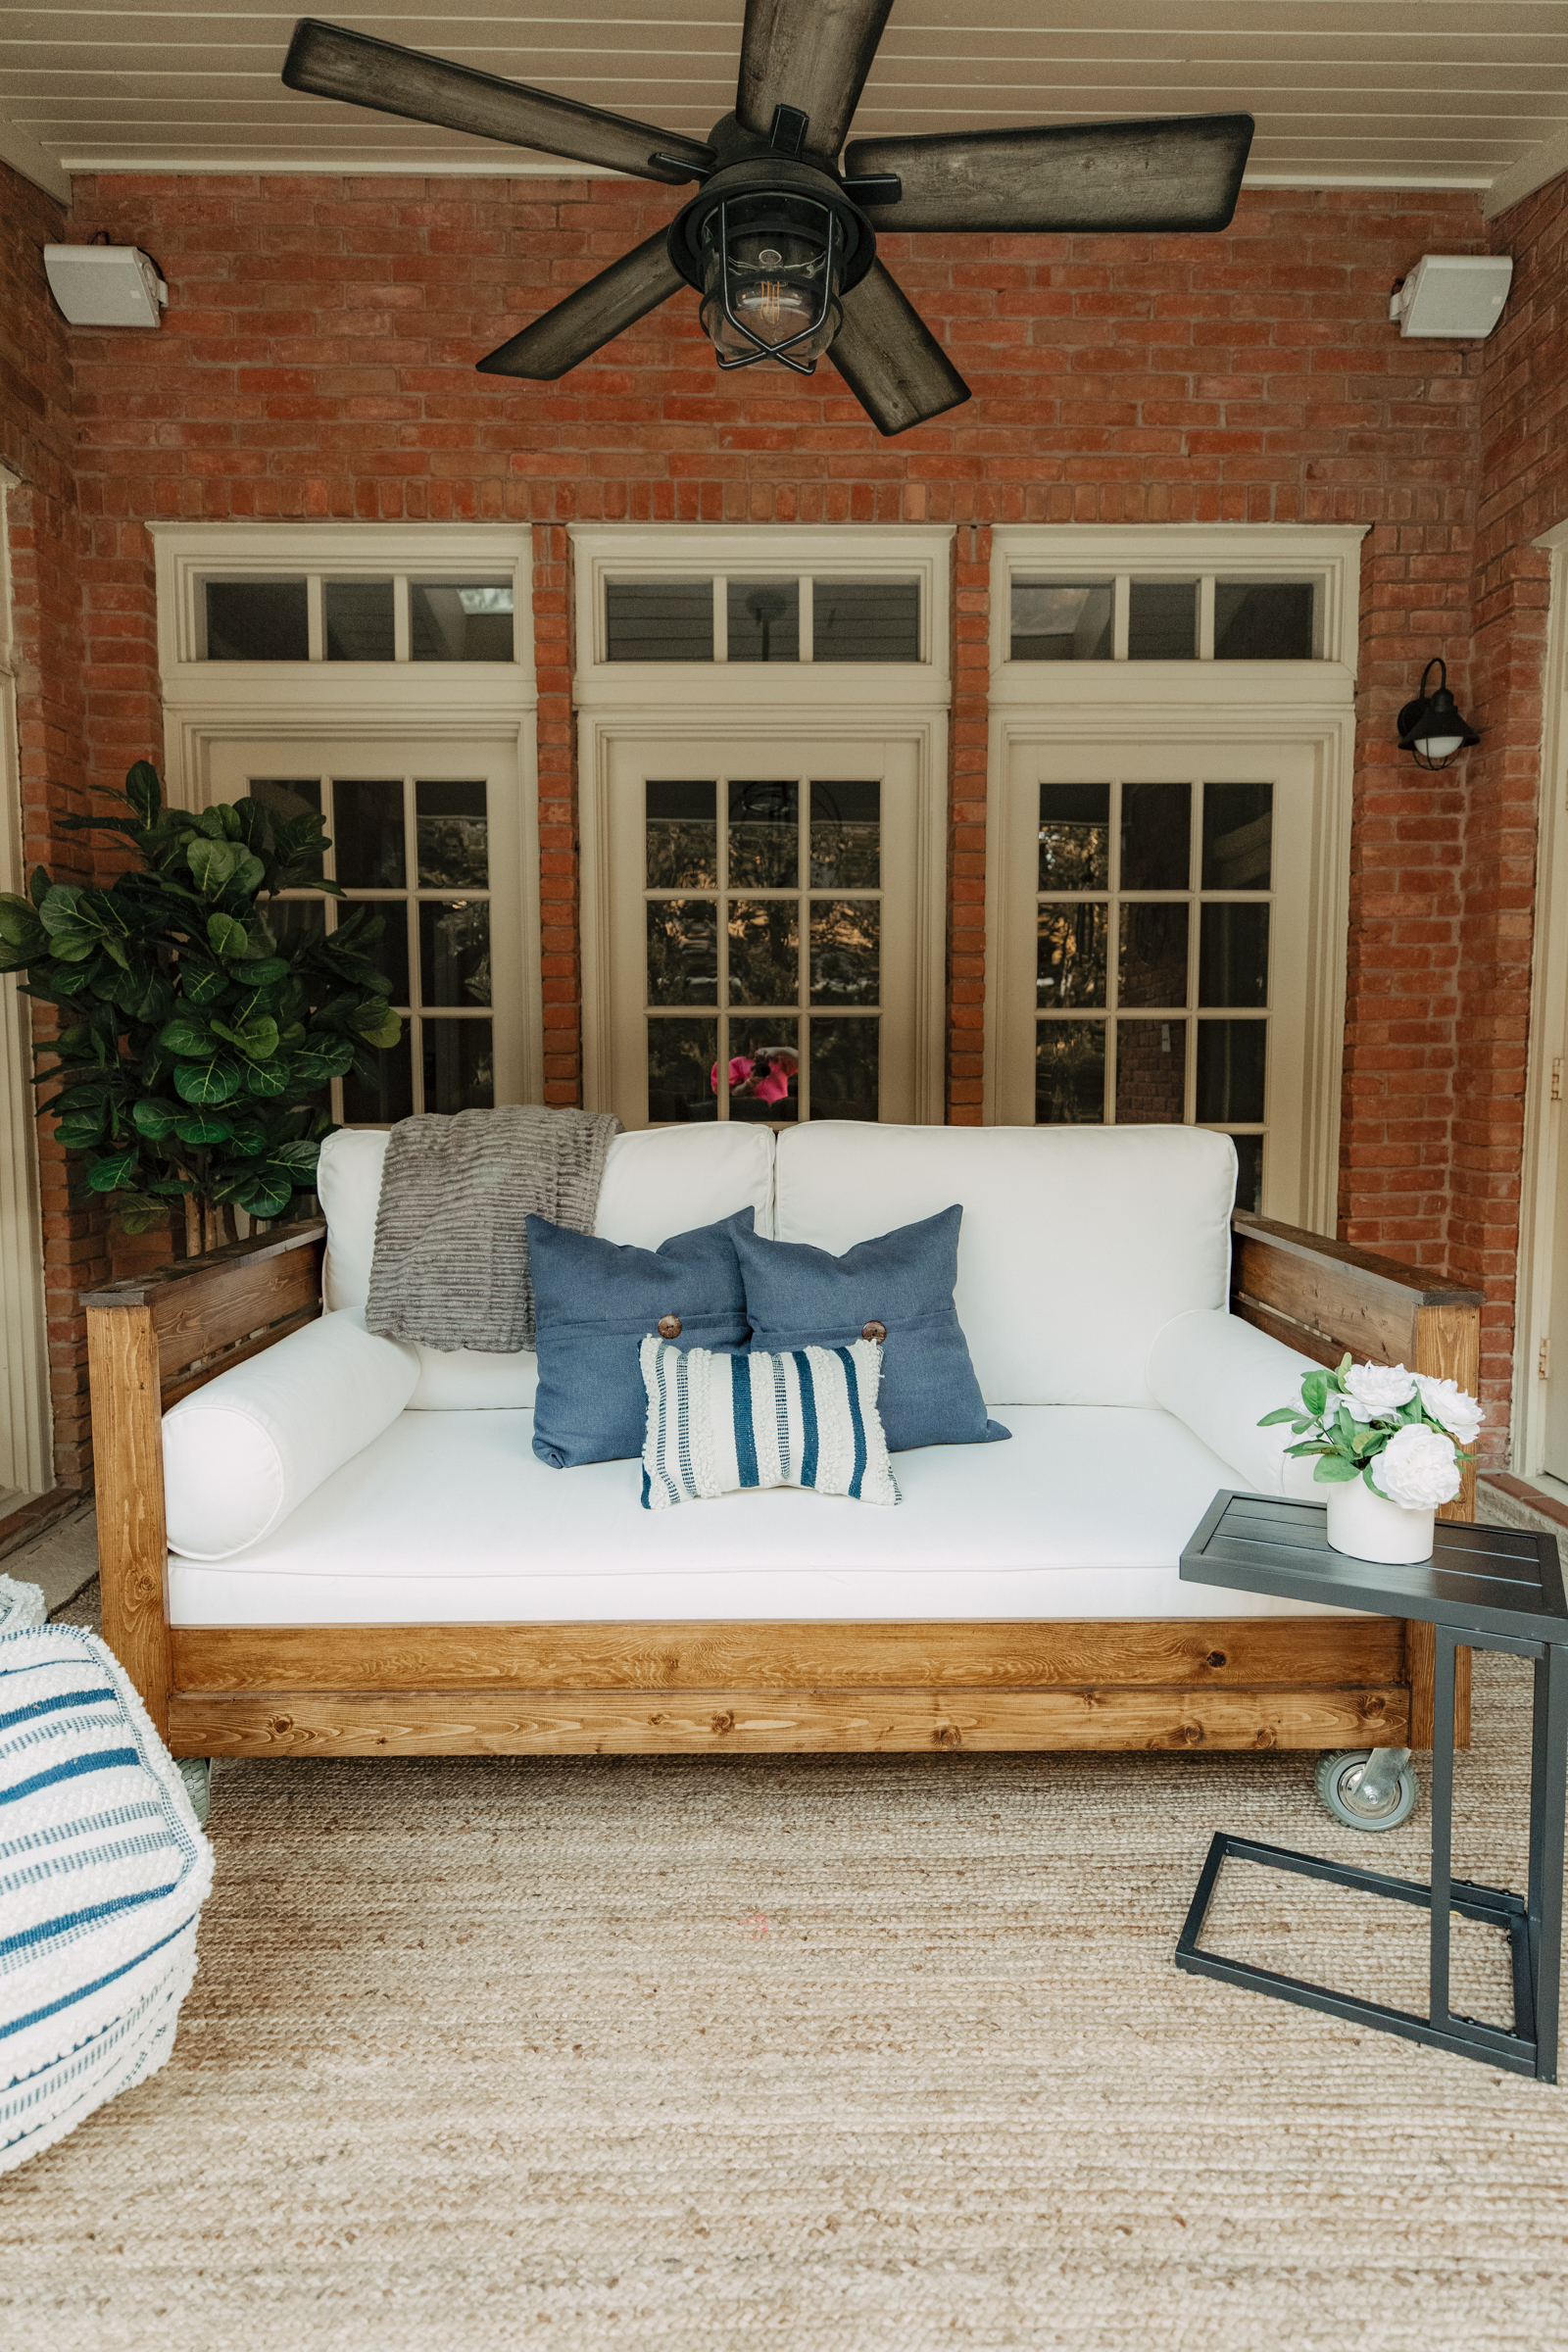 Patio and porch decor from Walmart. How to decorate your porch swing on a budget